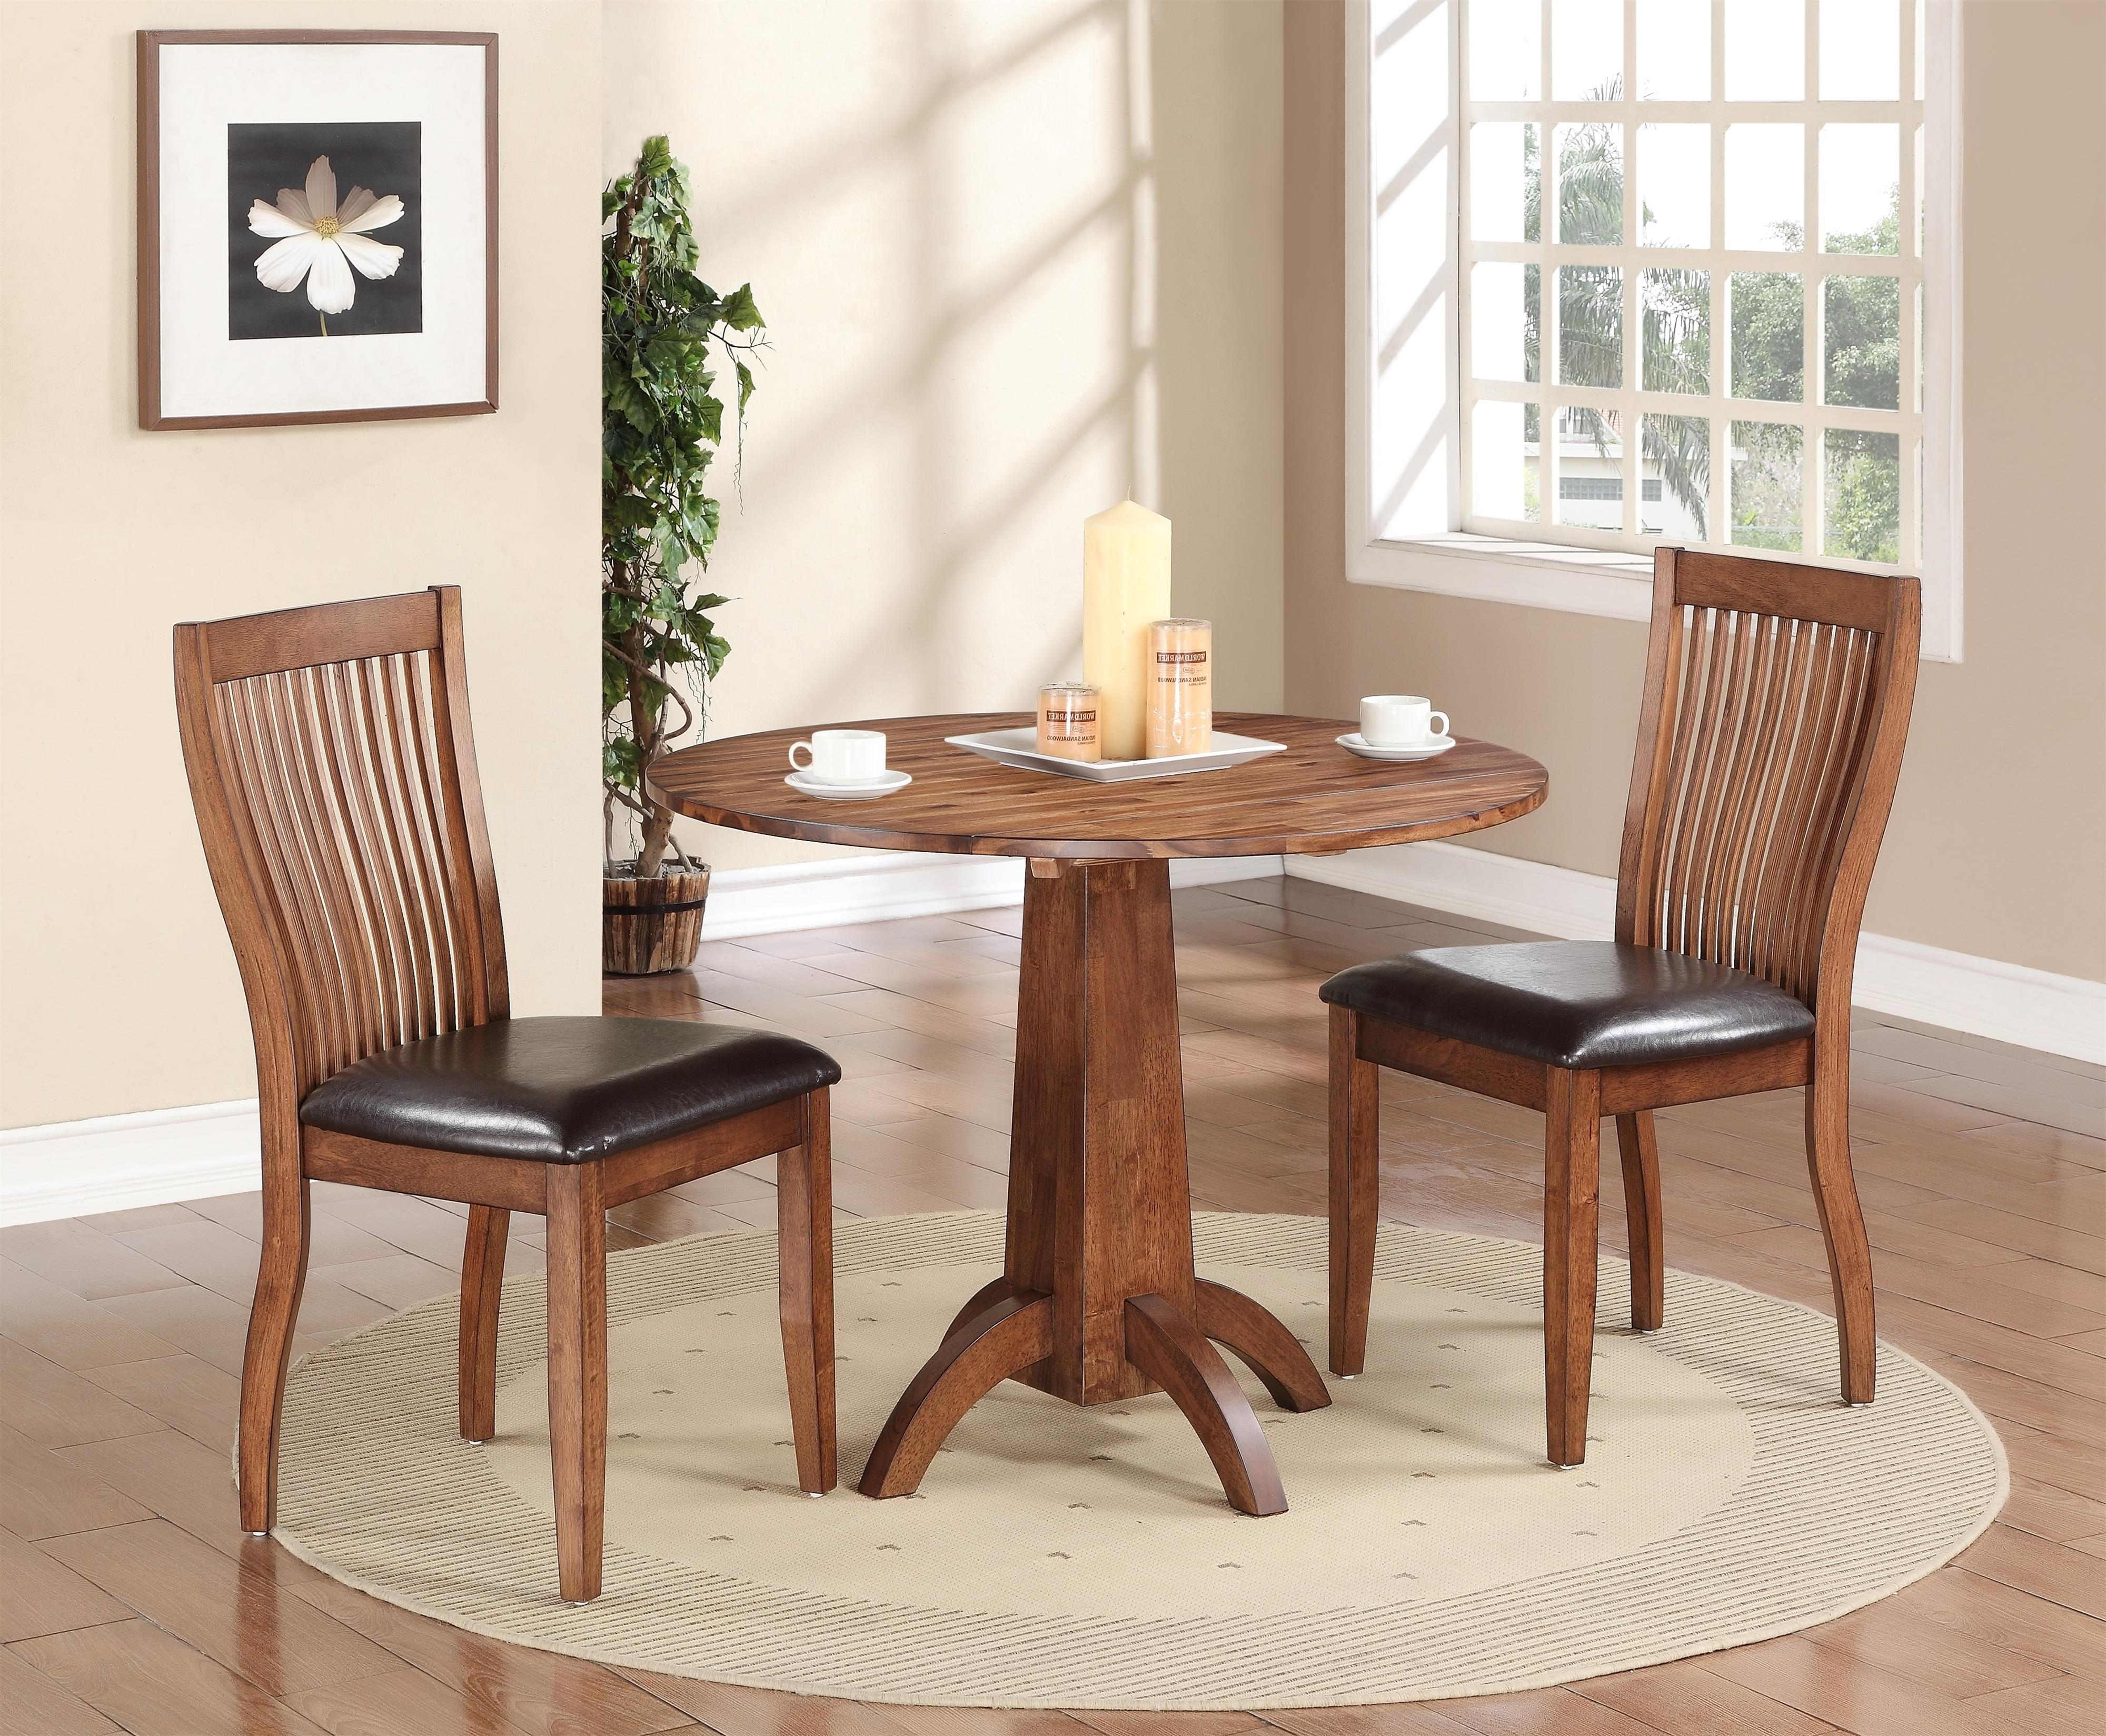 Favorite Dining Room Chairs Only With Regard To Winners Only Broadway 3 Piece Dining Set With Slat Back Chairs (View 14 of 25)